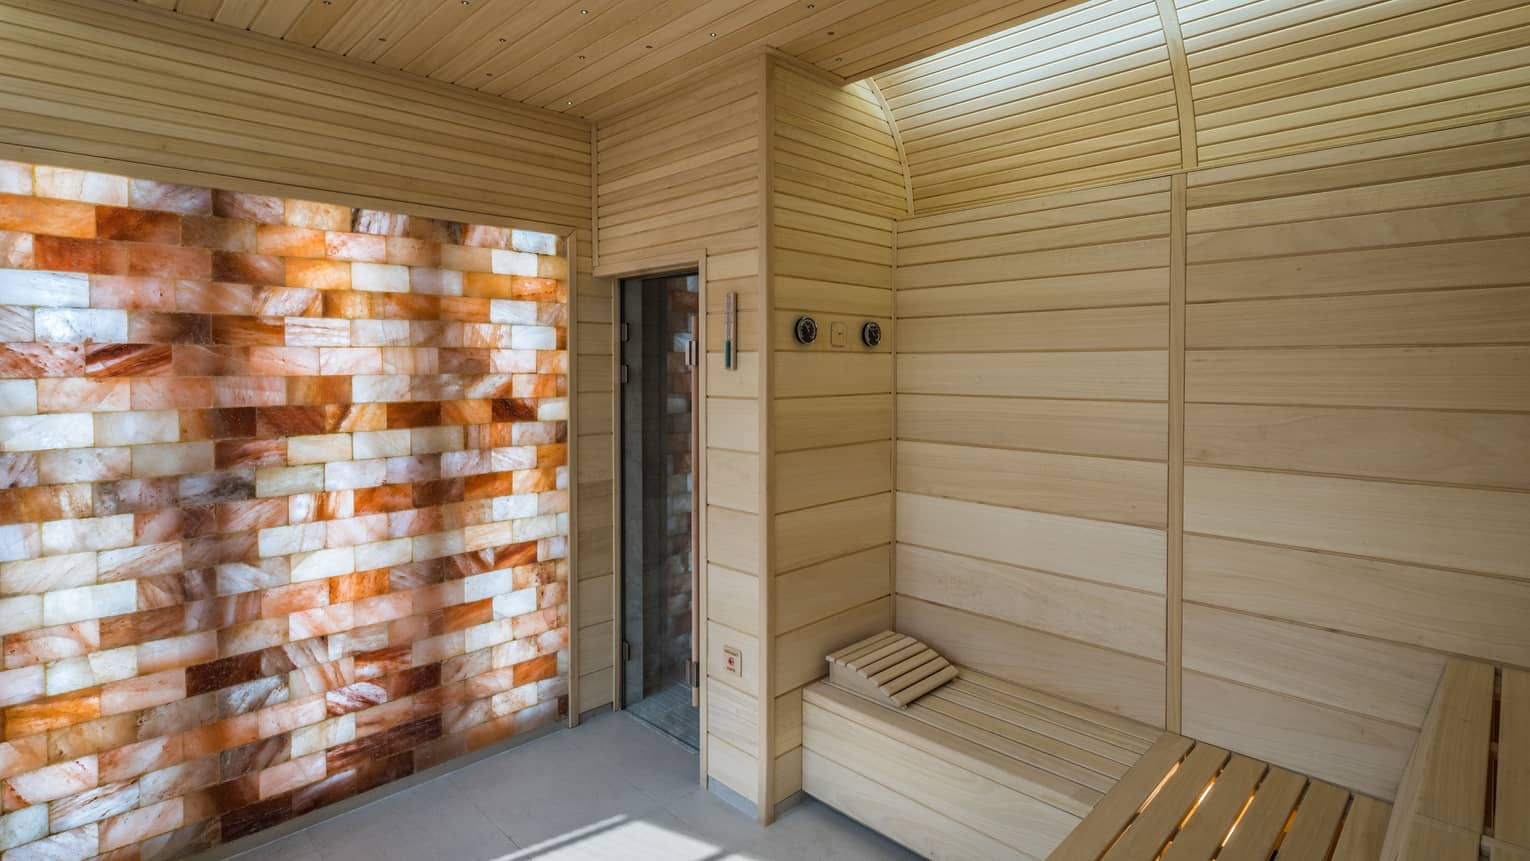 The Club wood sauna room with illuminated wall with wood, brick pattern